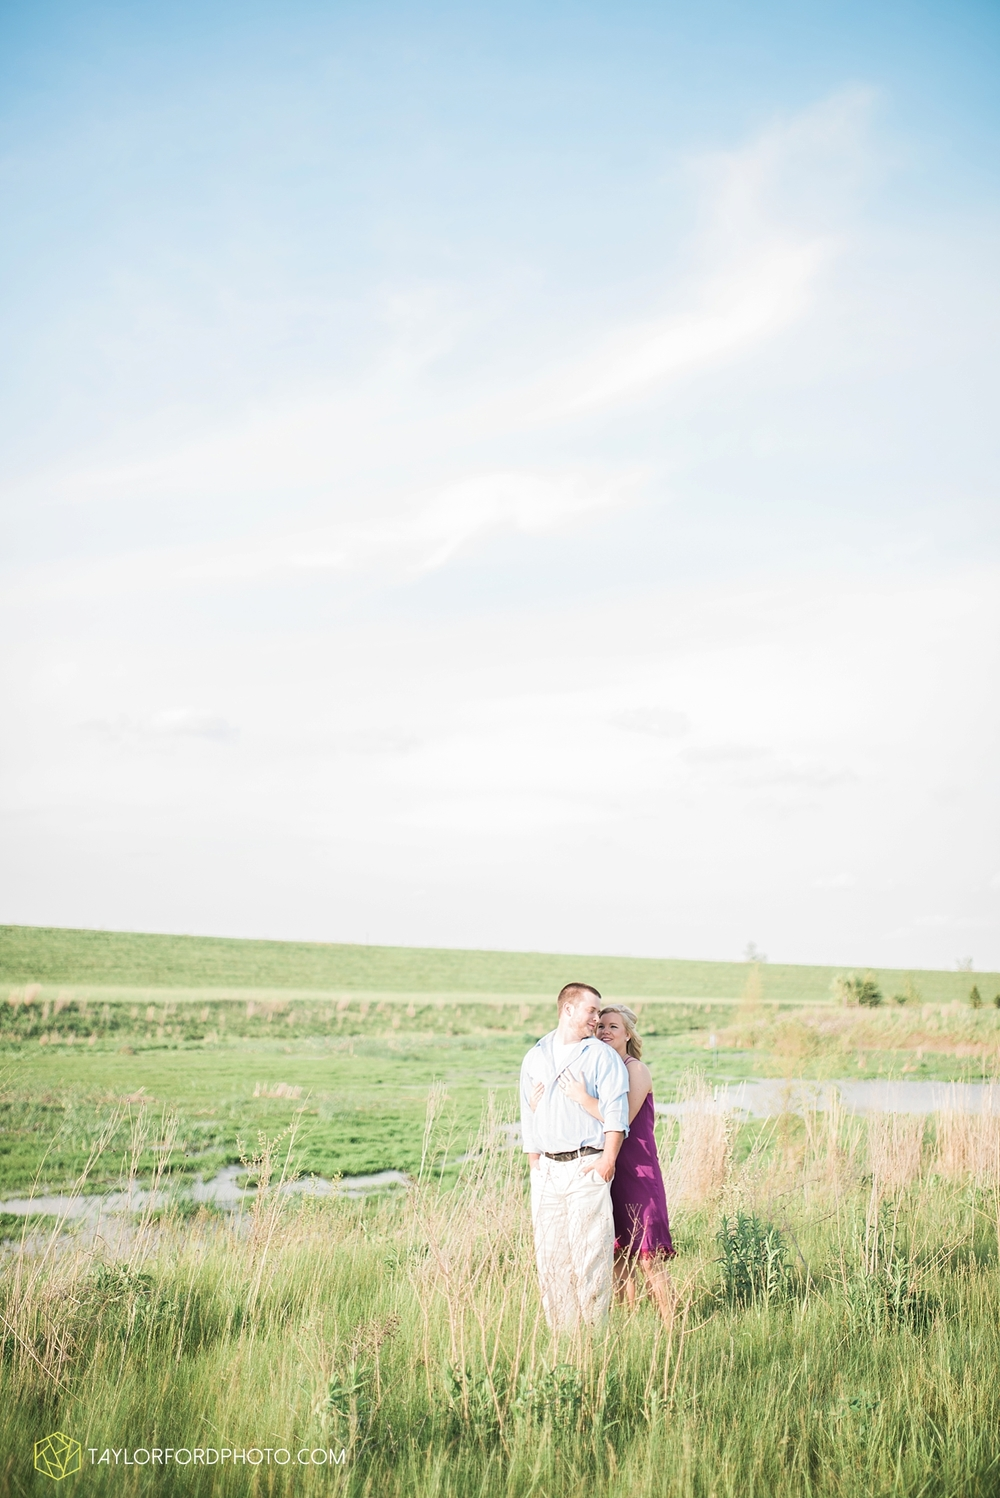 van_wert_ohio_engagement_photography_taylor_ford_0854.jpg